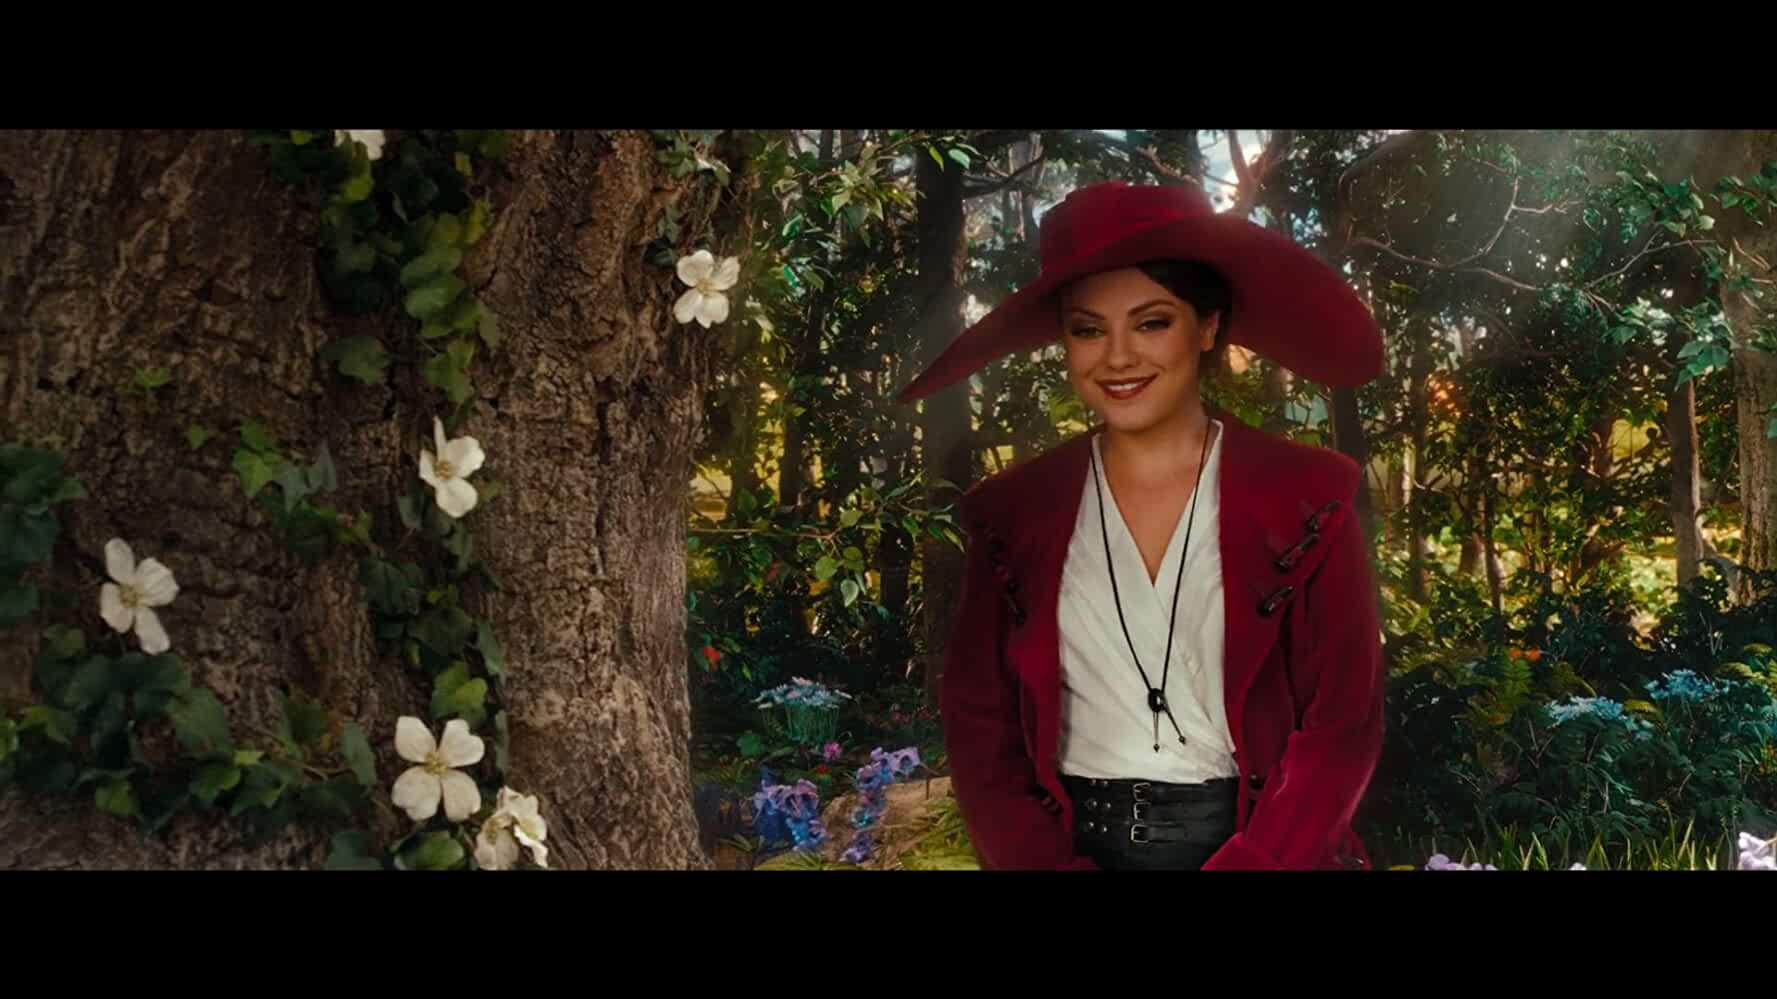 Mila Kunis in Oz the Great and Powerful (2013)